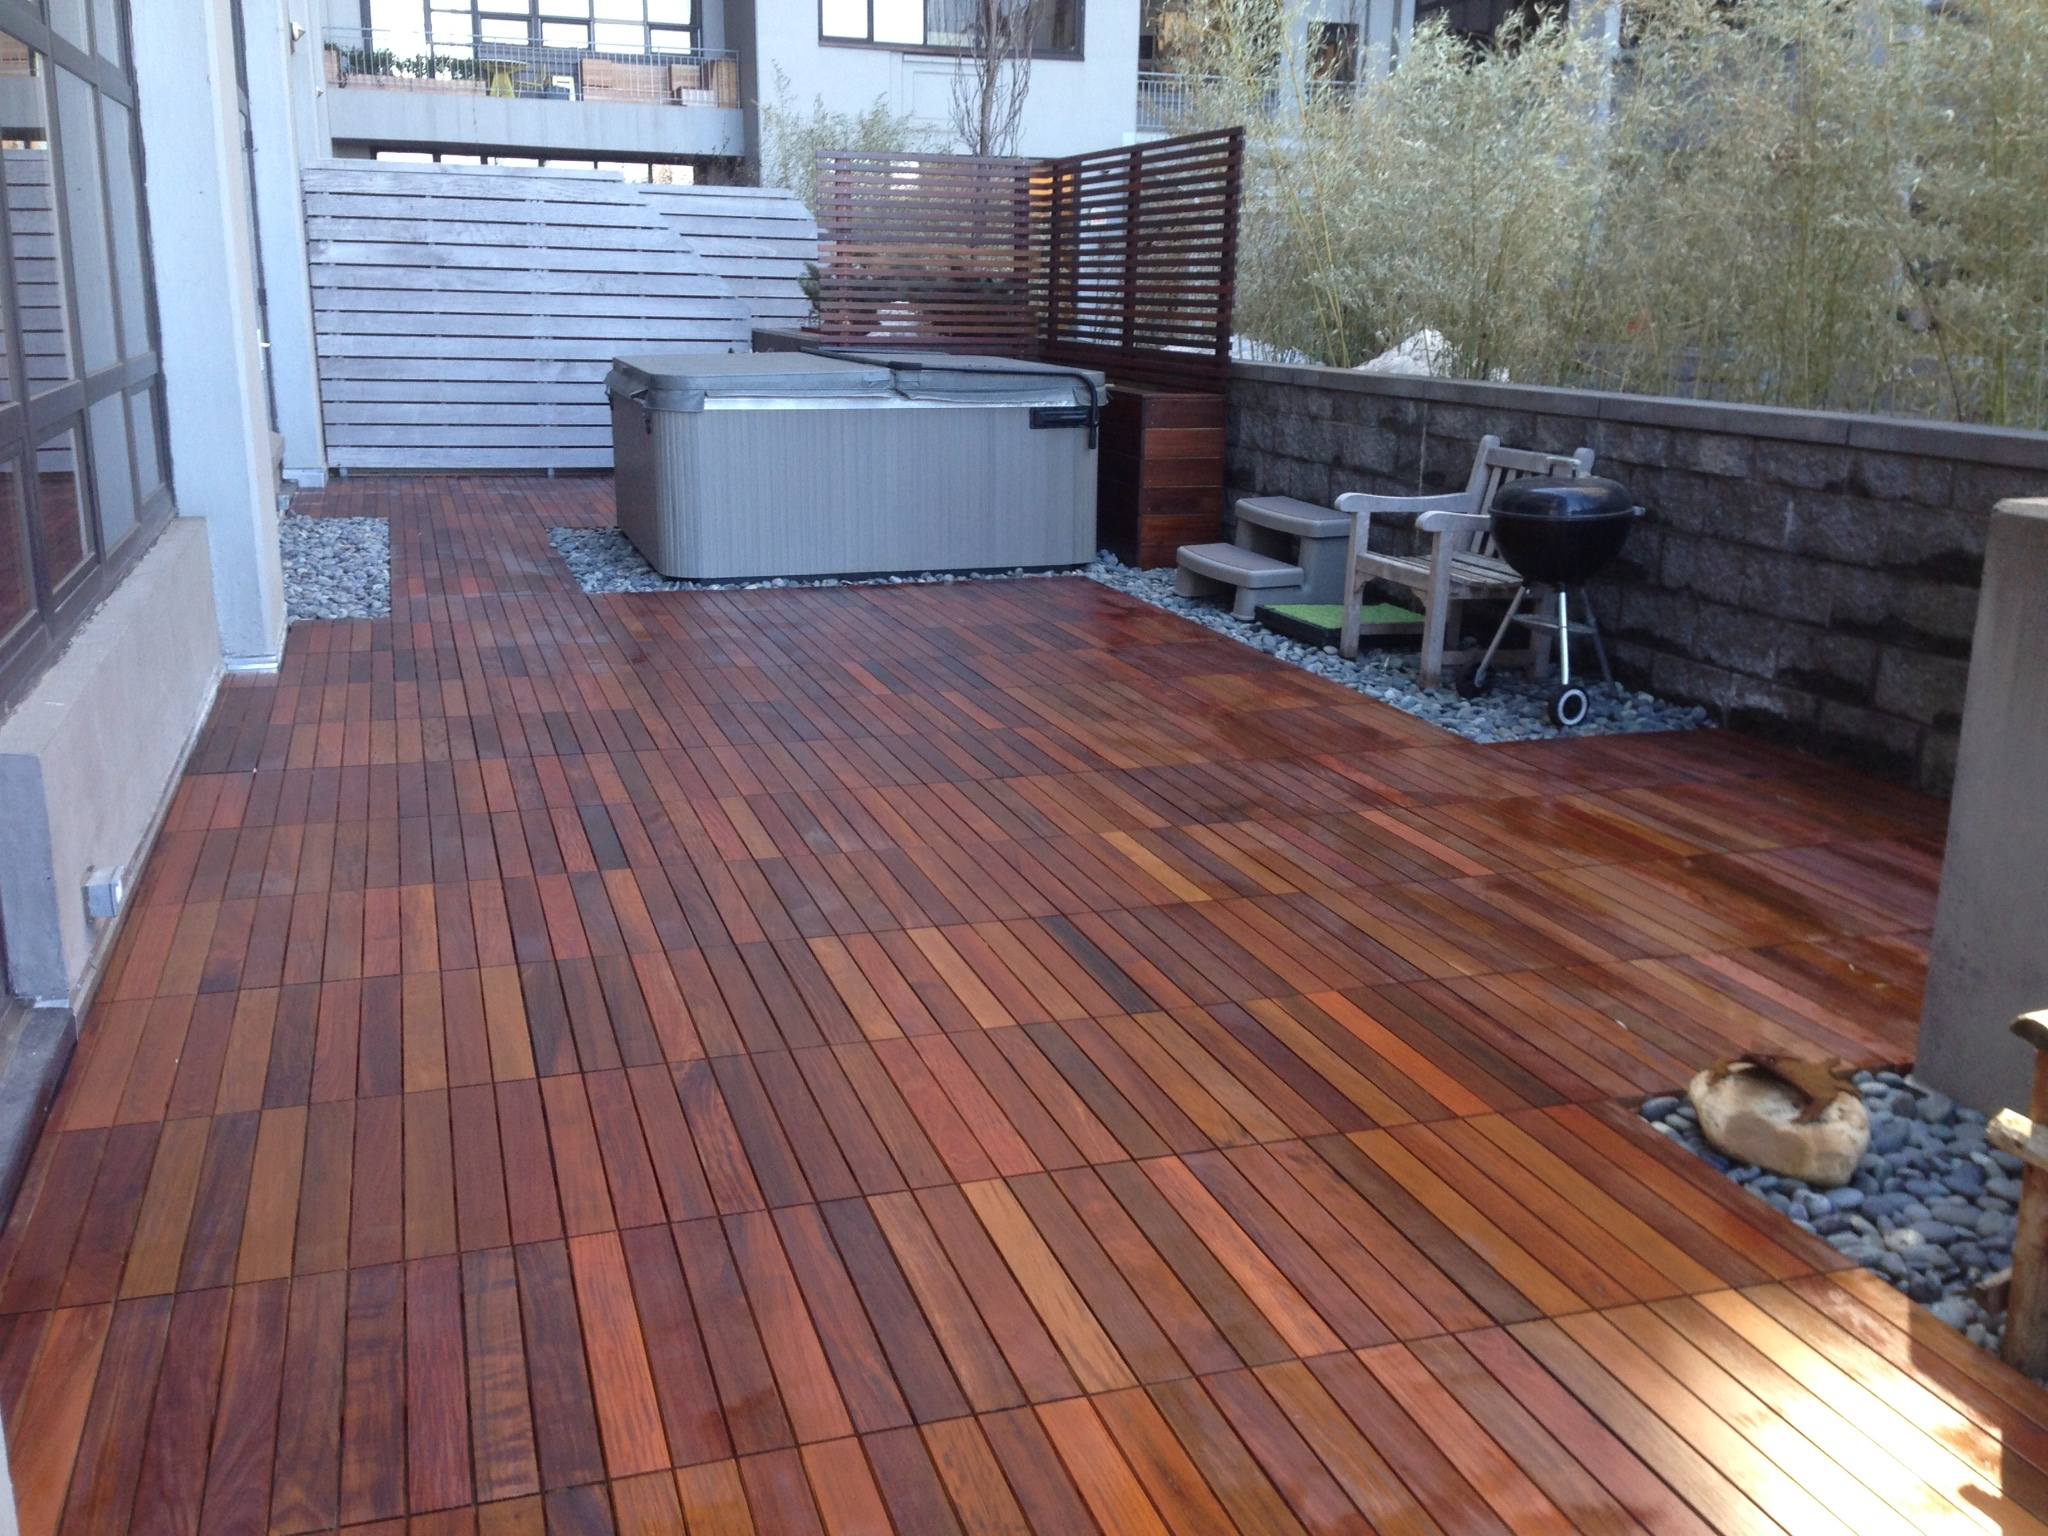 Interlocking Deck Tiles Home Depot Decks Best Outdoor Home Design Ideas With Ipe Deck Tiles